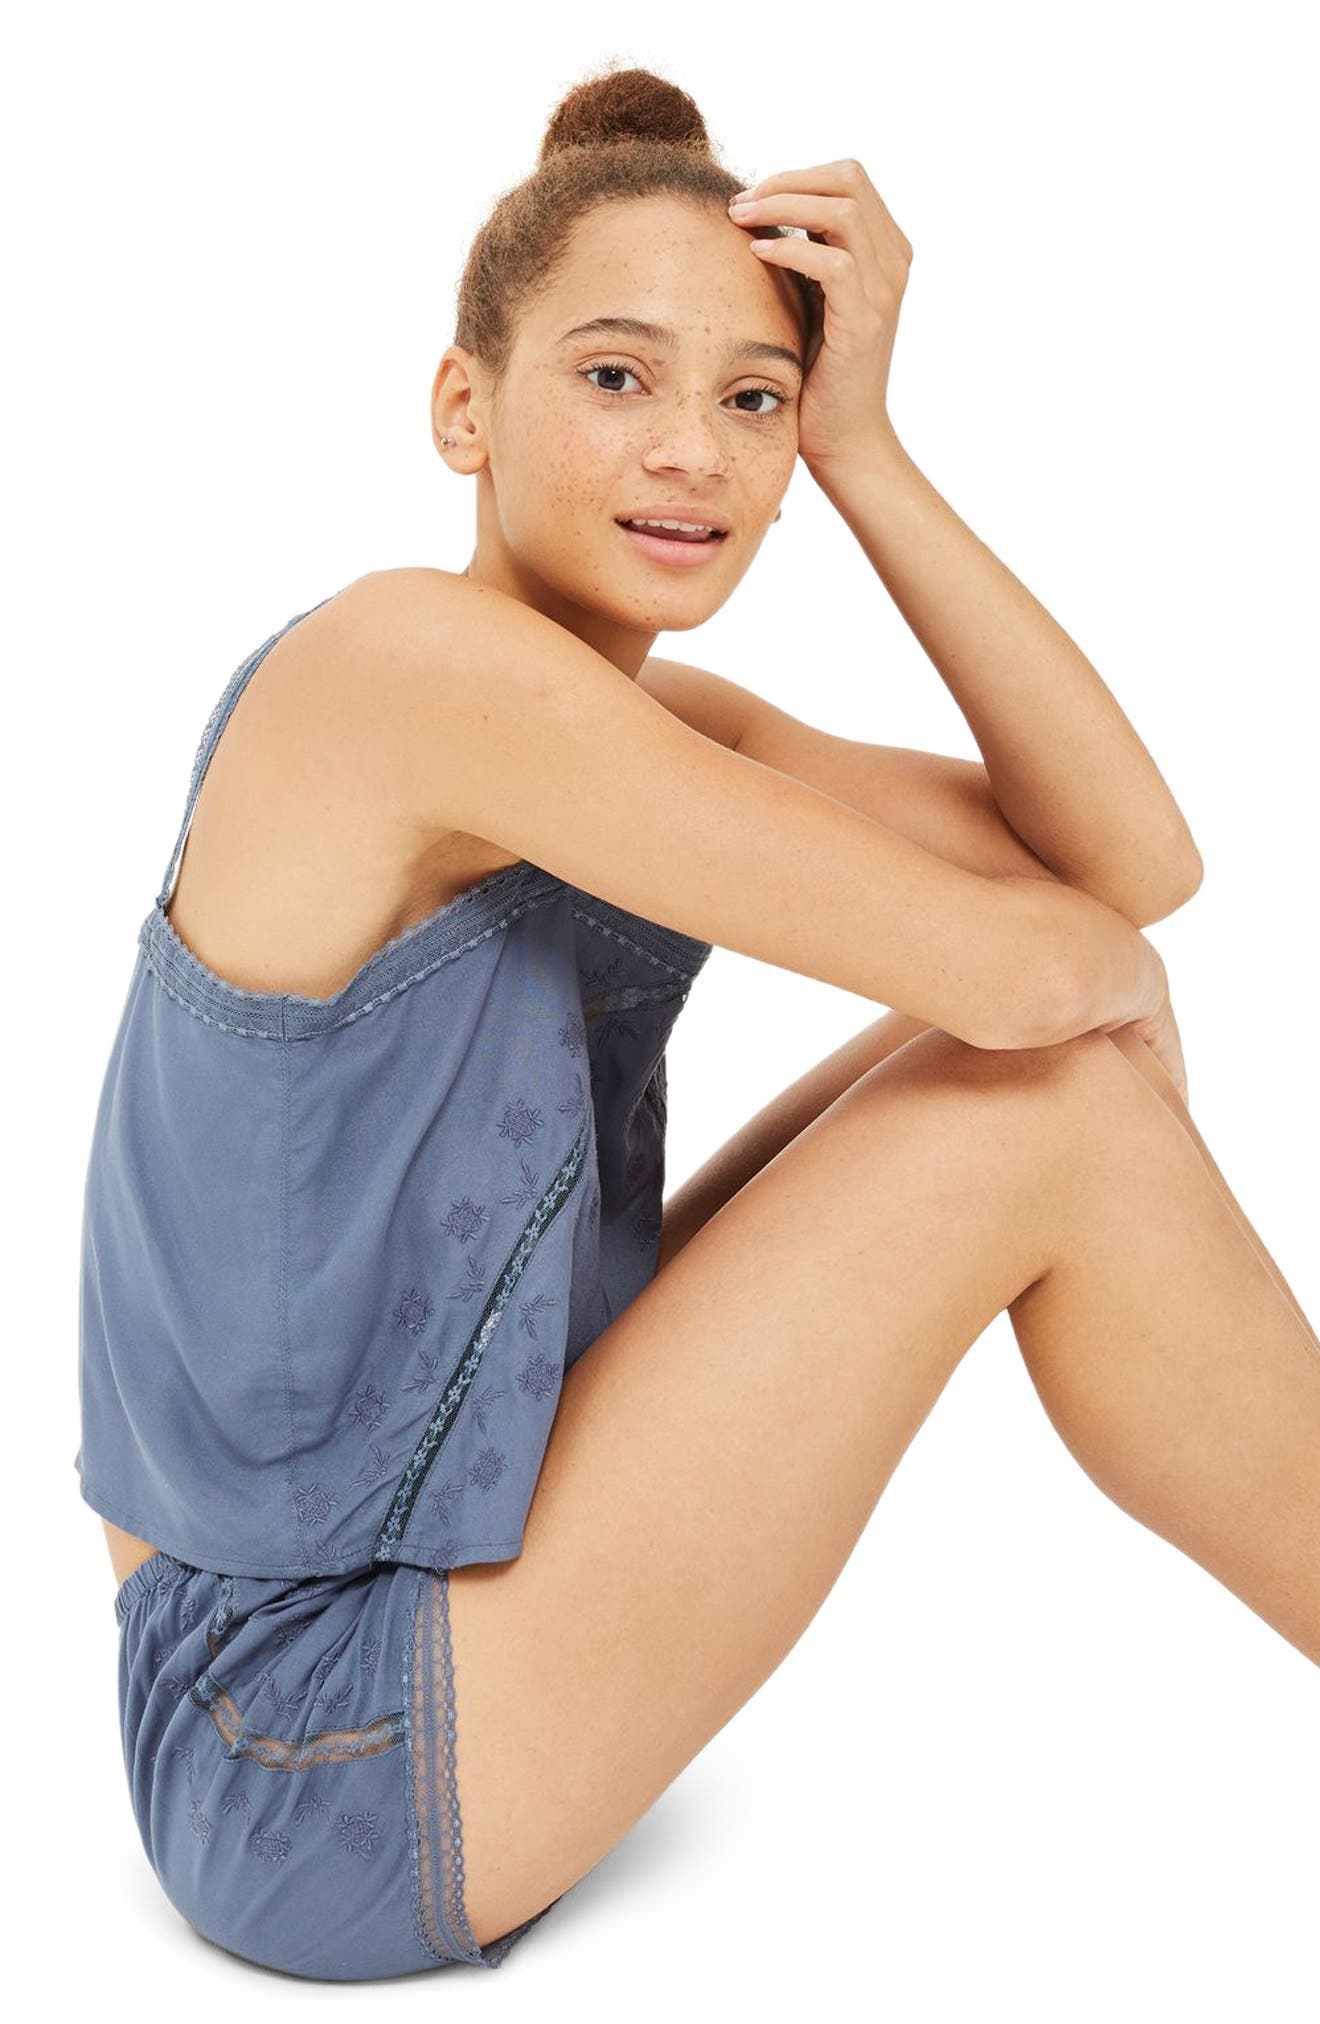 Slate Broderie Camisole & Sleep Shorts,                             Alternate thumbnail 4, color,                             020